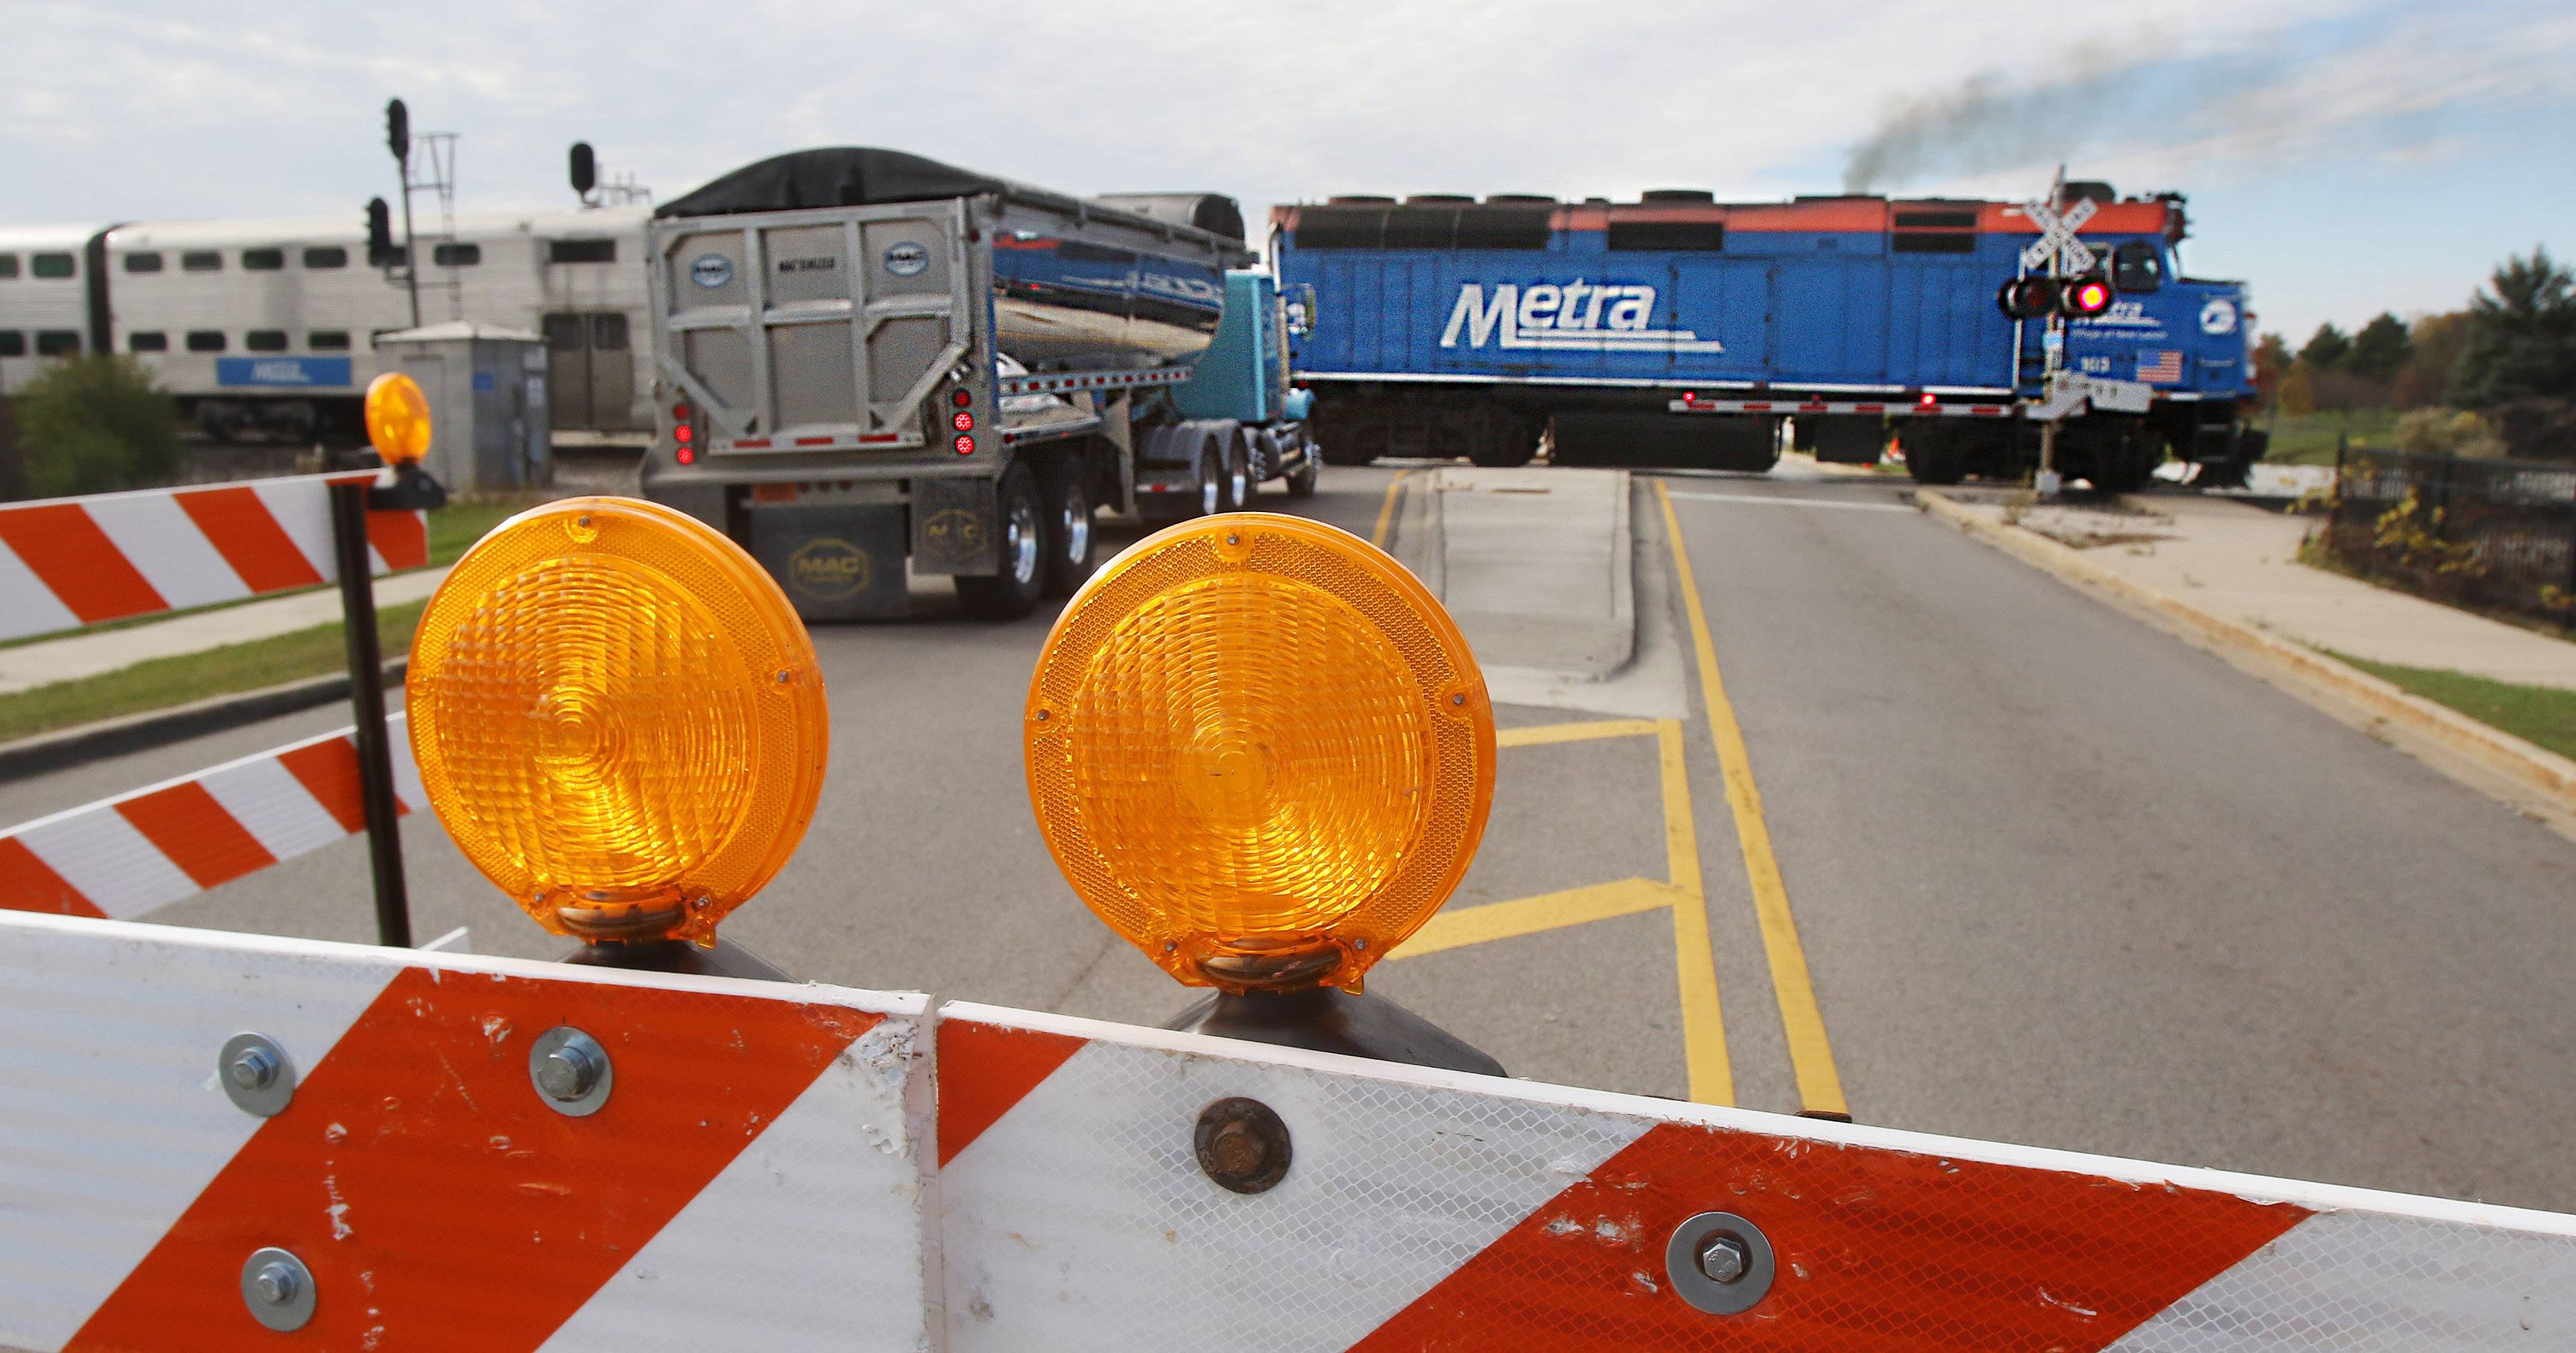 Hook Drive near Route 83 in Round Lake Beach is closed as construction crews from the Wisconsin Central Ltd. Railroad worked on the railroad crossing. The work began Monday and is scheduled to be complete Nov. 15.